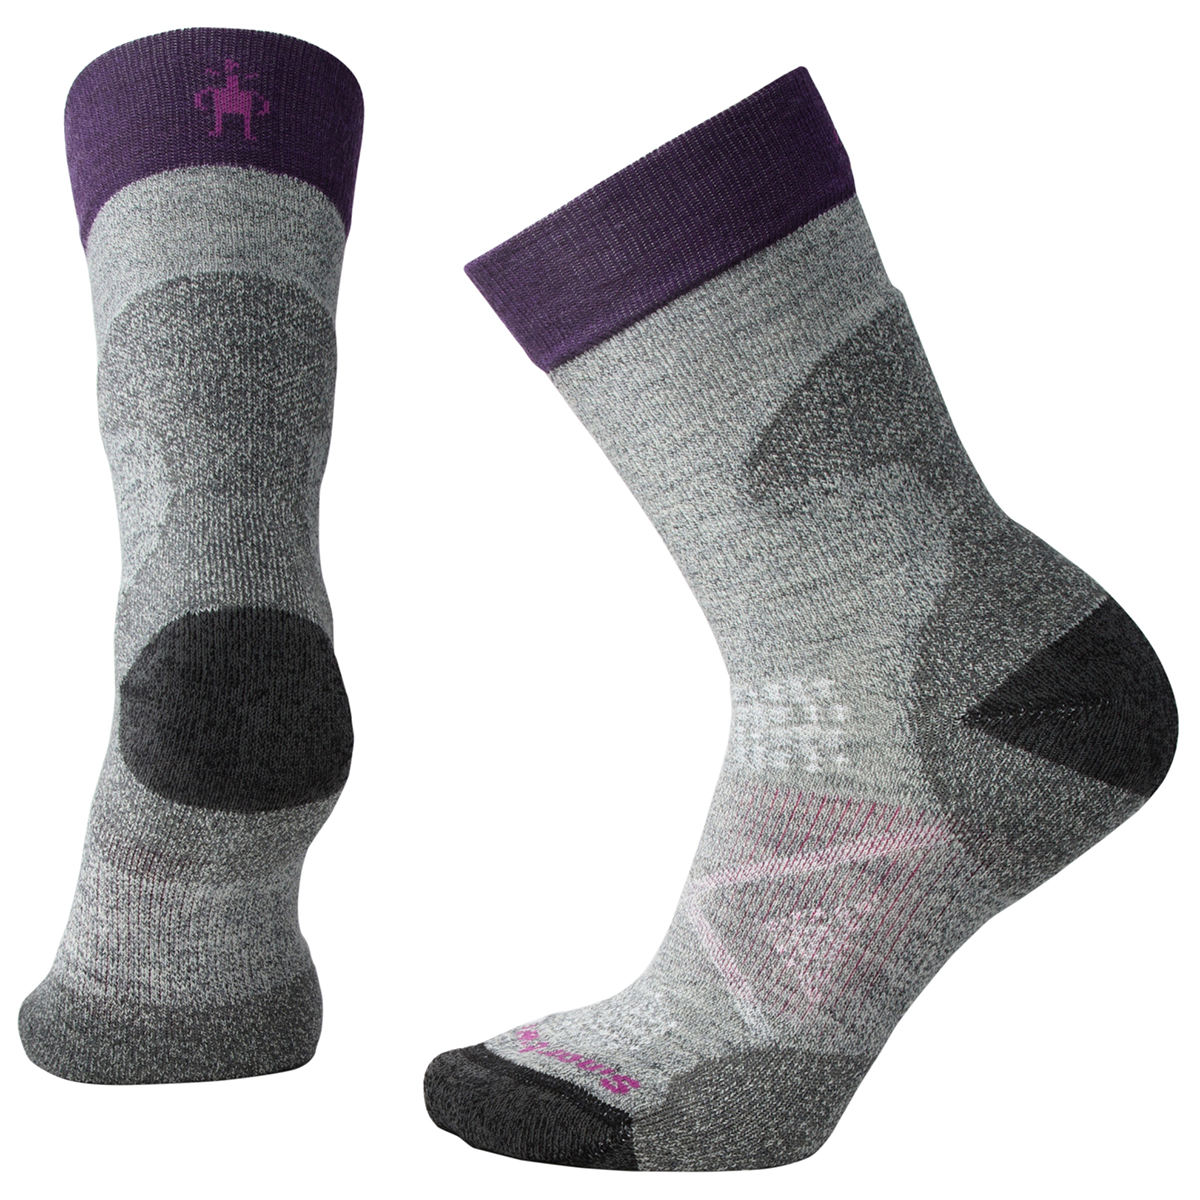 Smartwool Women's Phd Pro Light Crew Socks - Black, L